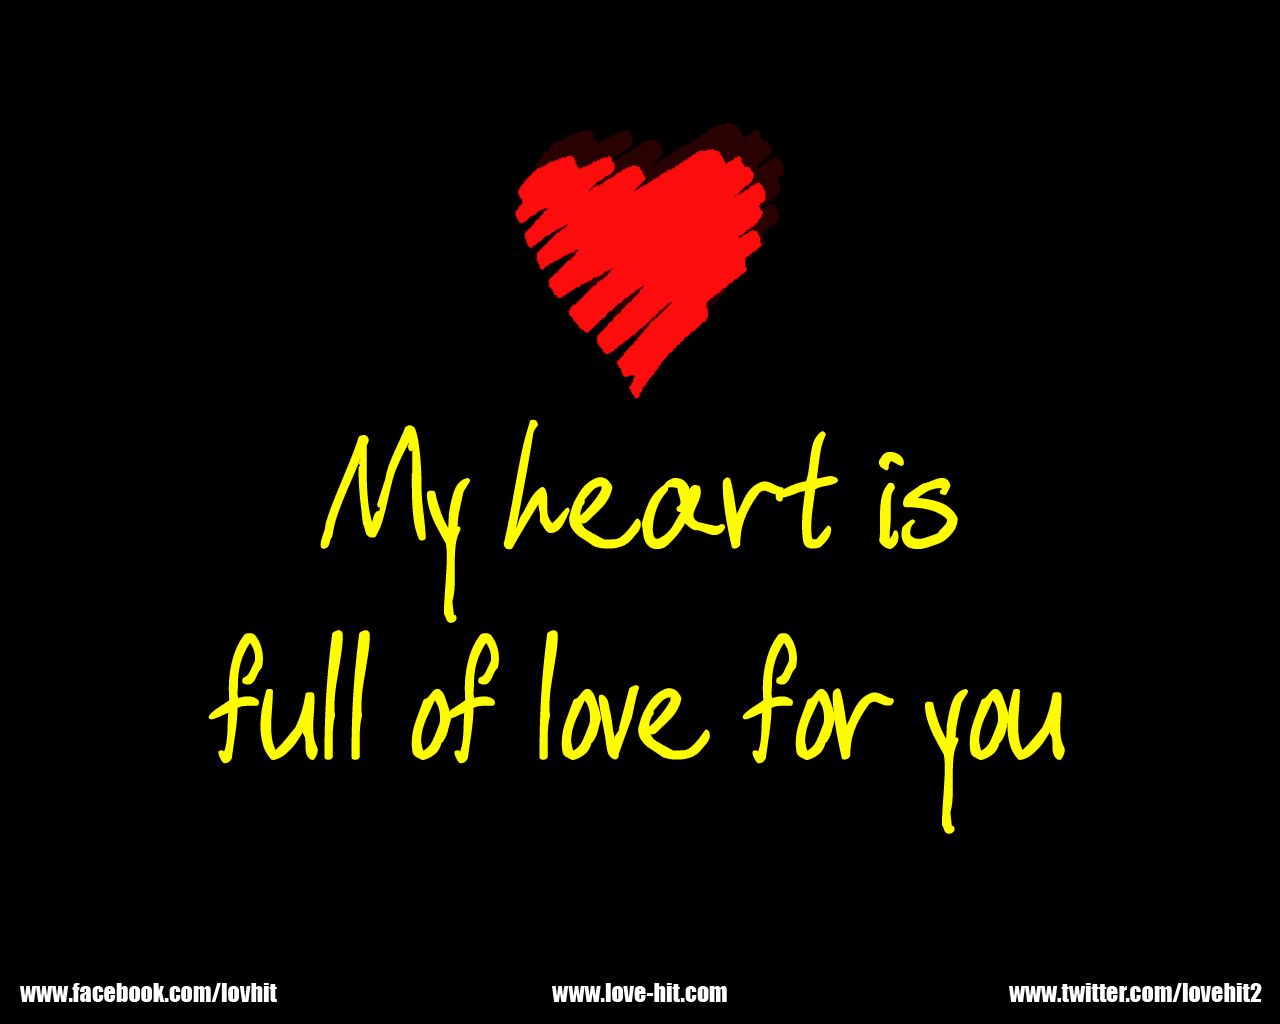 My heart if full of love for you